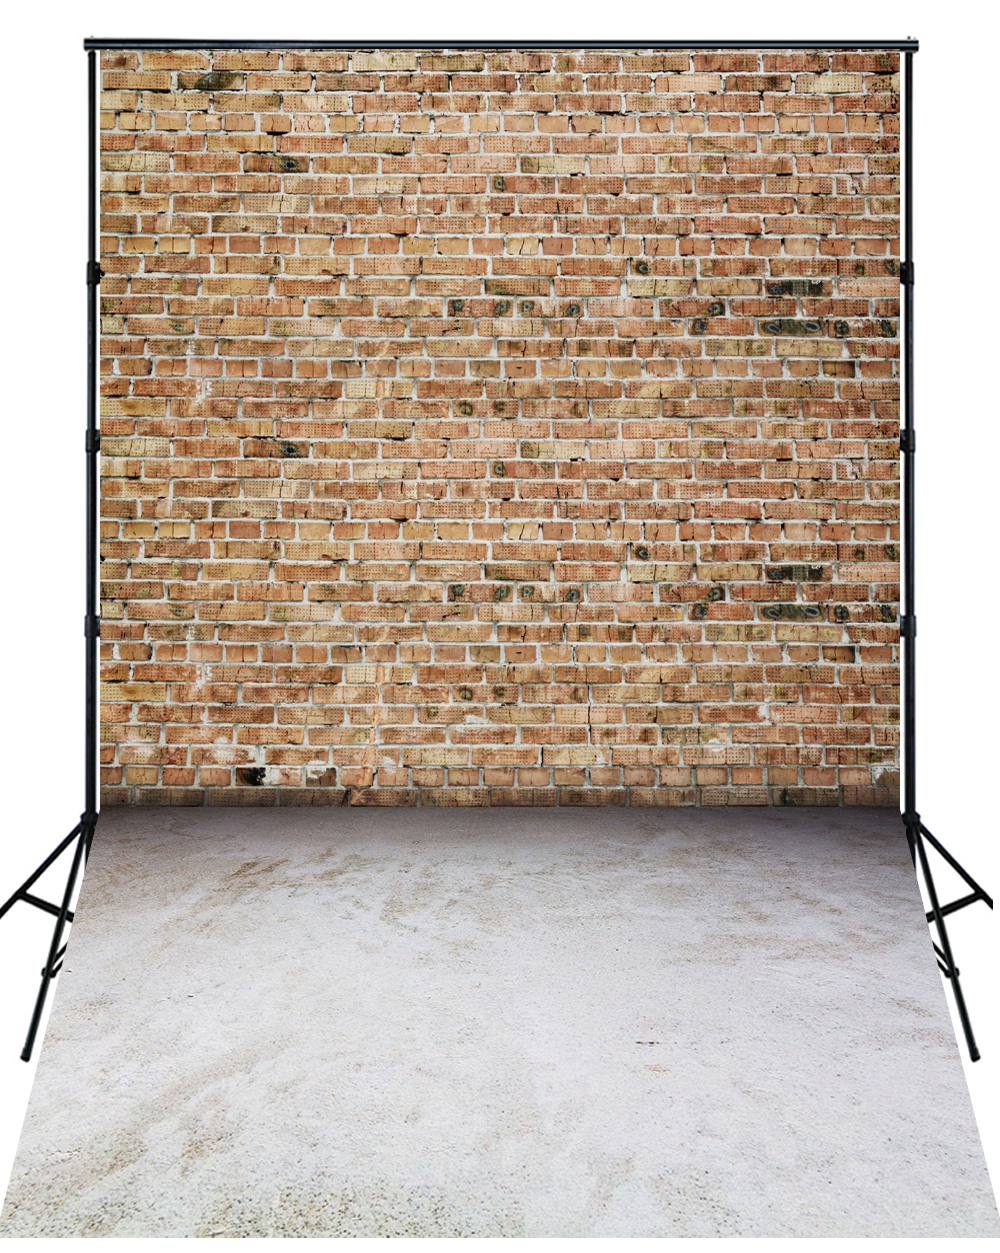 2016 New arrival brick wall photography backdrops wedding stage photo background XT-4183 shengyongbao 300cm 200cm vinyl custom photography backdrops brick wall theme photo studio props photography background brw 12